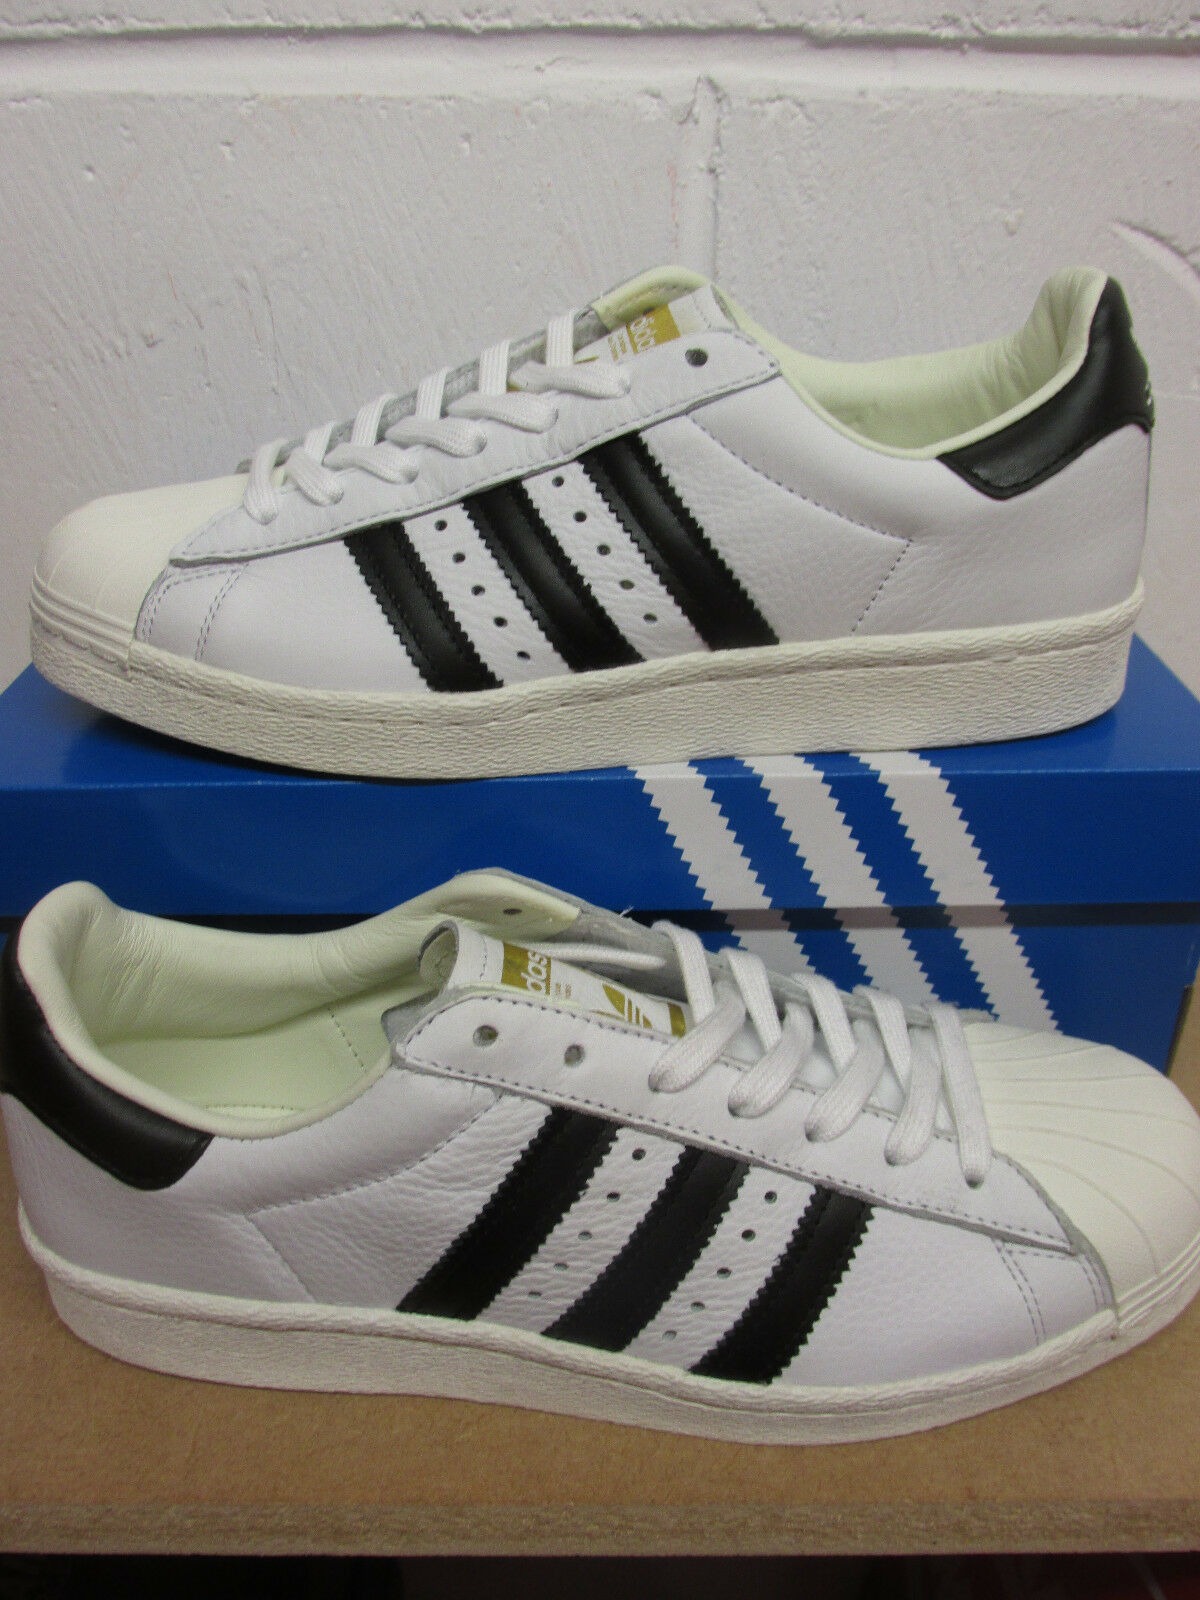 the latest 9c62e b829c Adidas superstar impulso Uomo correndo bb0188 formatori originali.  originali. originali. 649205